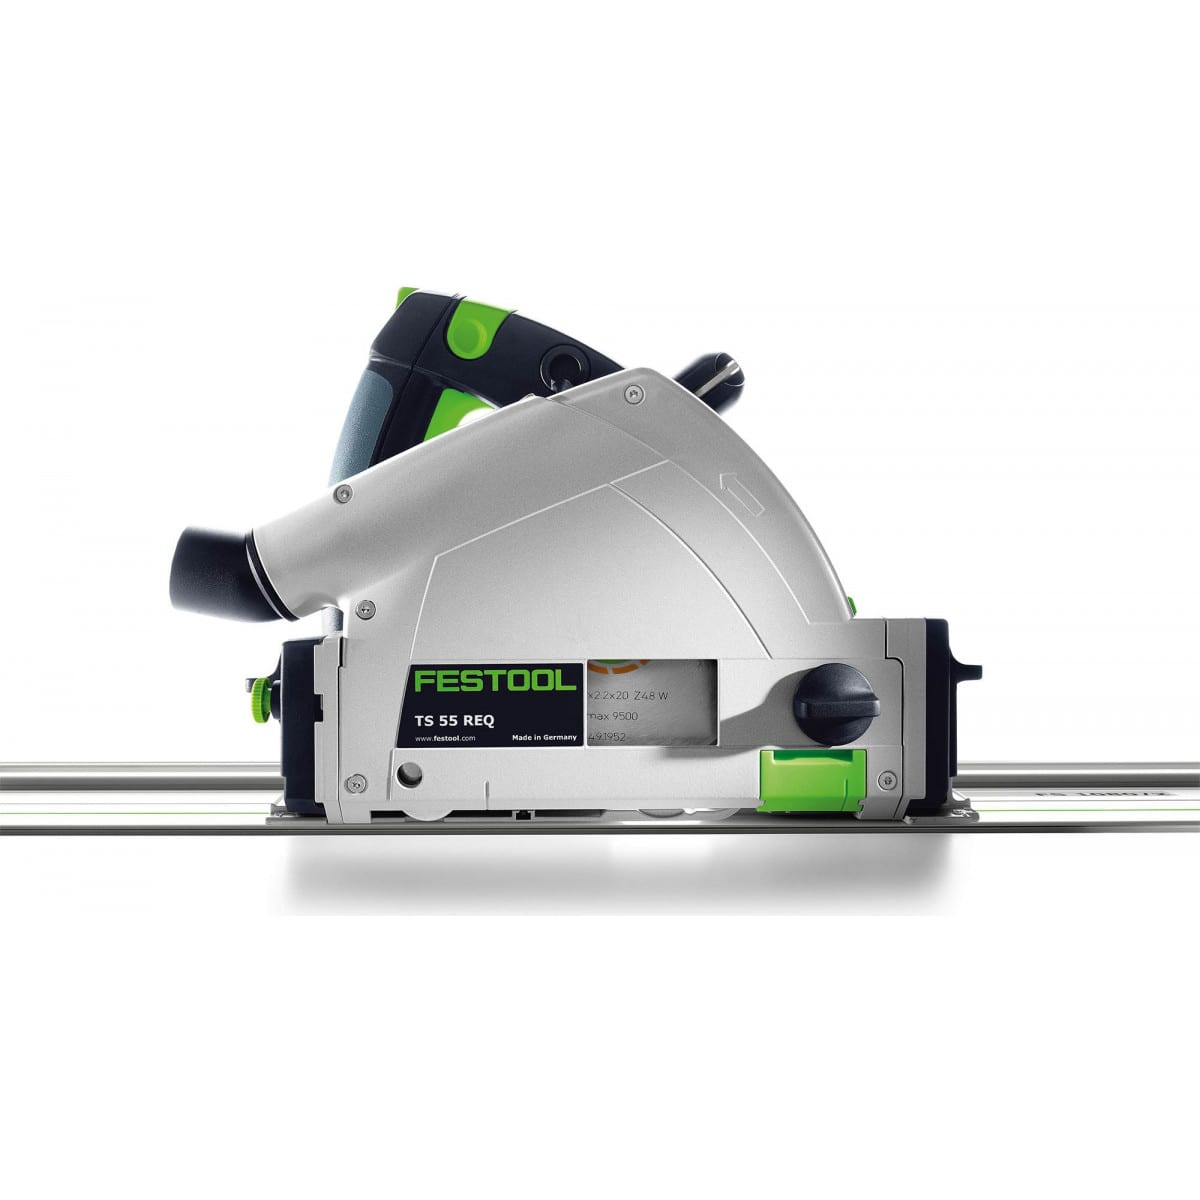 Bosch Track Saw Vs Festool Track Saw